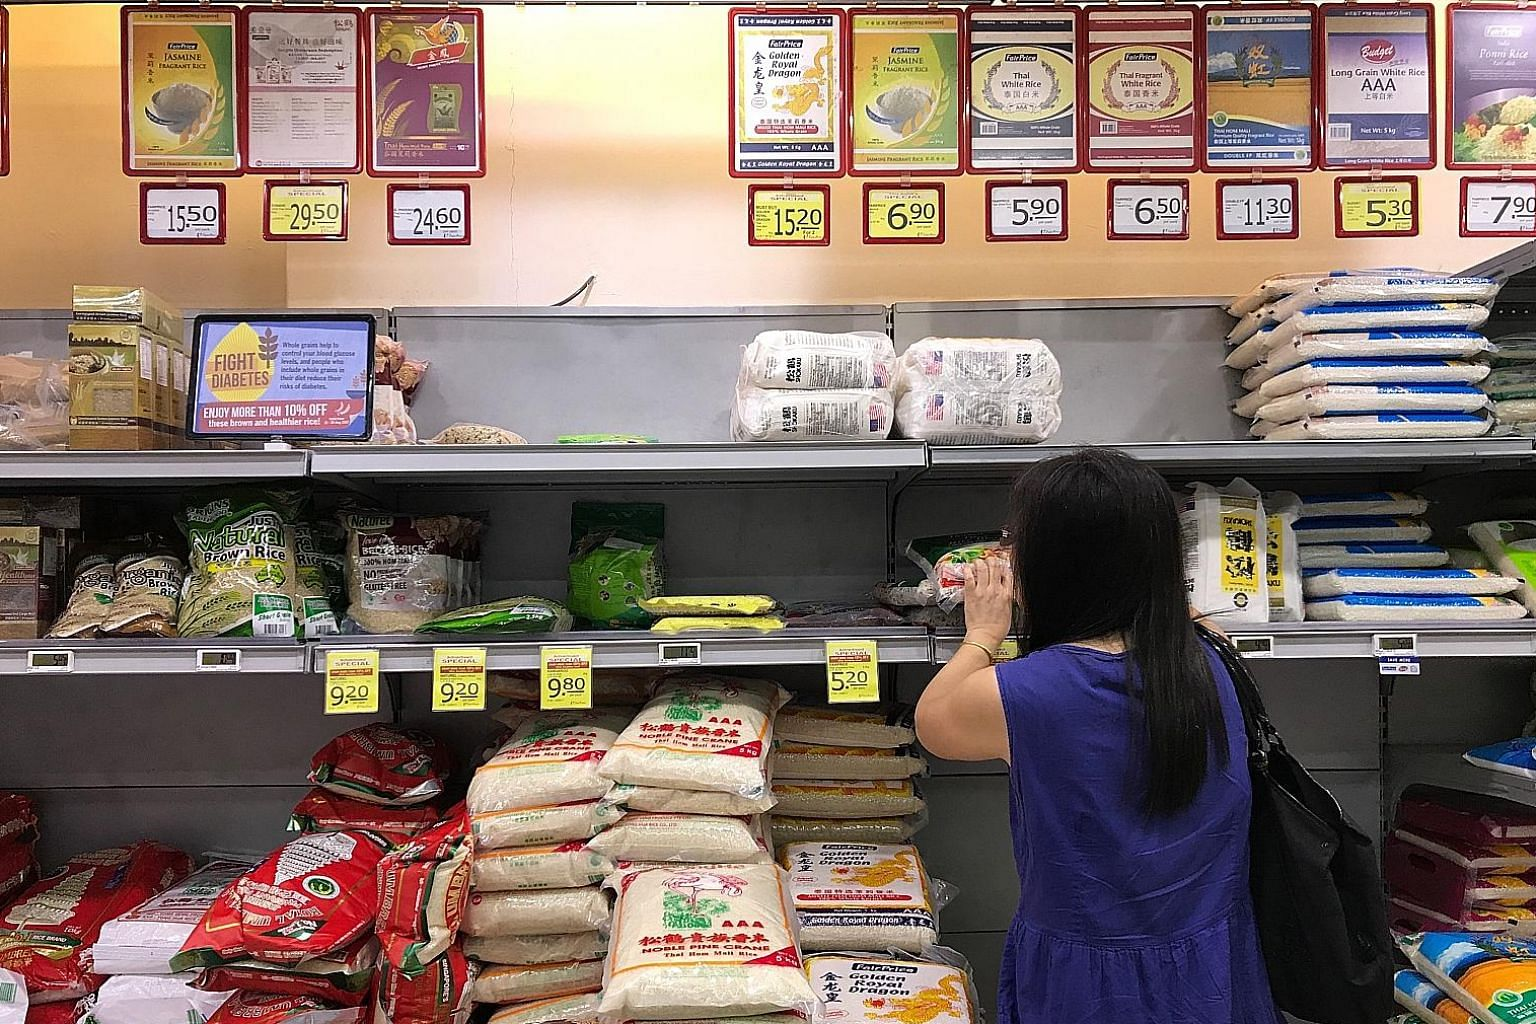 FairPrice has announced discounts of at least 10 per cent on healthier rice products, including unpolished red and brown rice products from its house brand, until next Wednesday. The supermarket chain hopes to encourage Singaporeans to switch to the